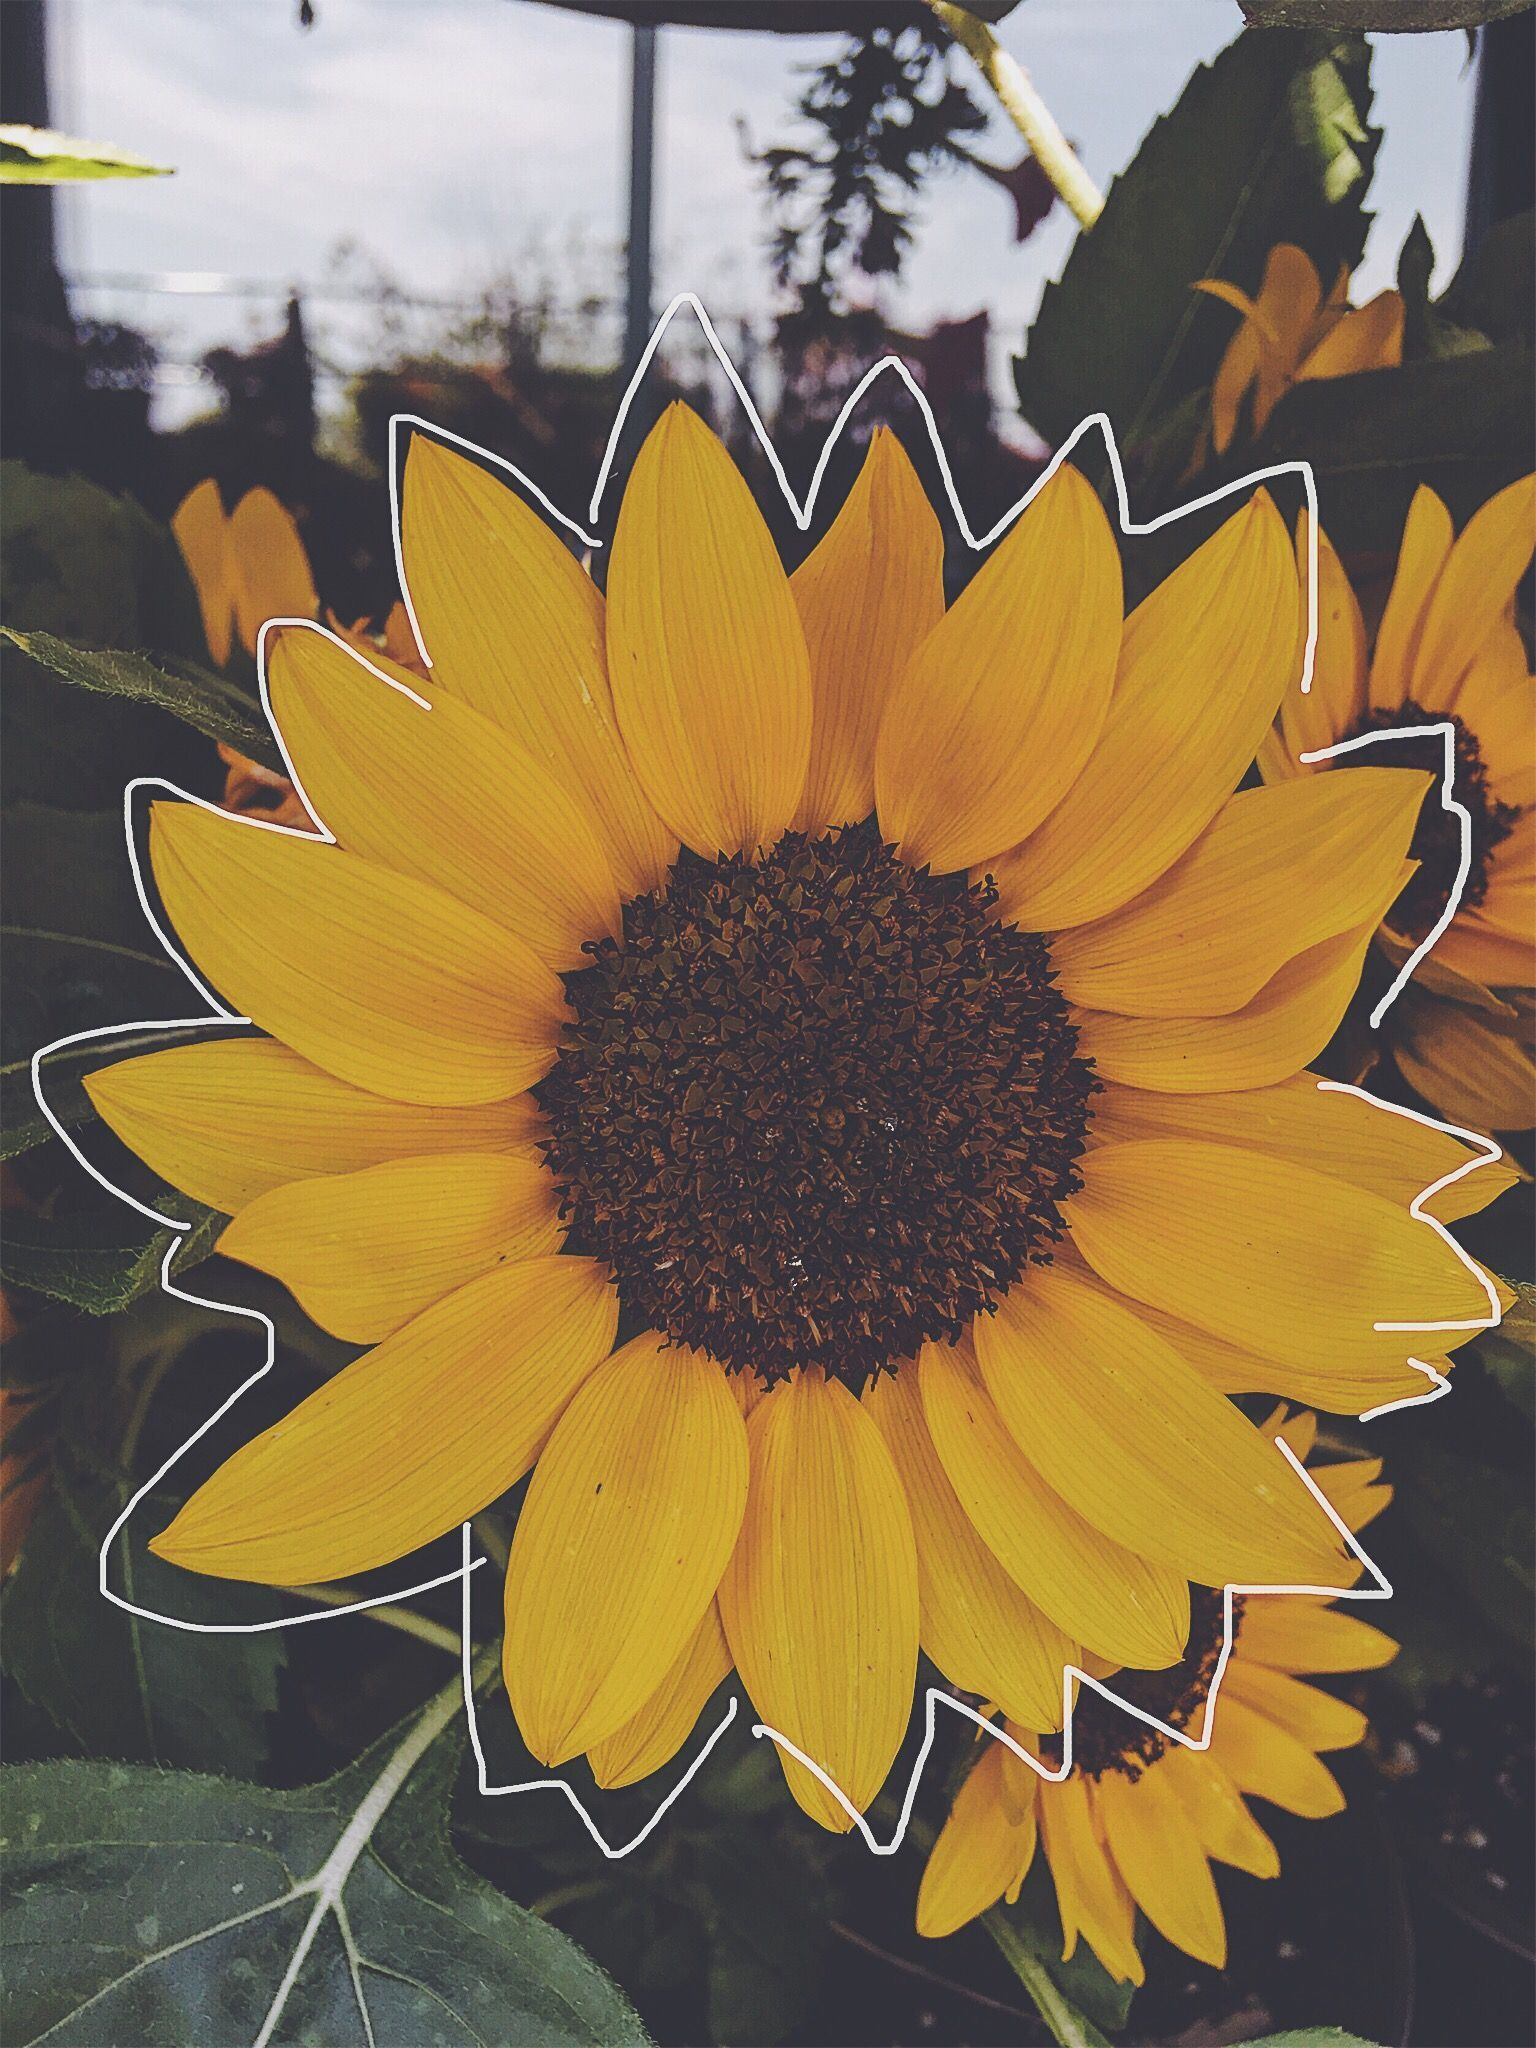 Sunflower Aesthetic Wallpapers Top Free Sunflower Aesthetic Backgrounds Wallpaperaccess